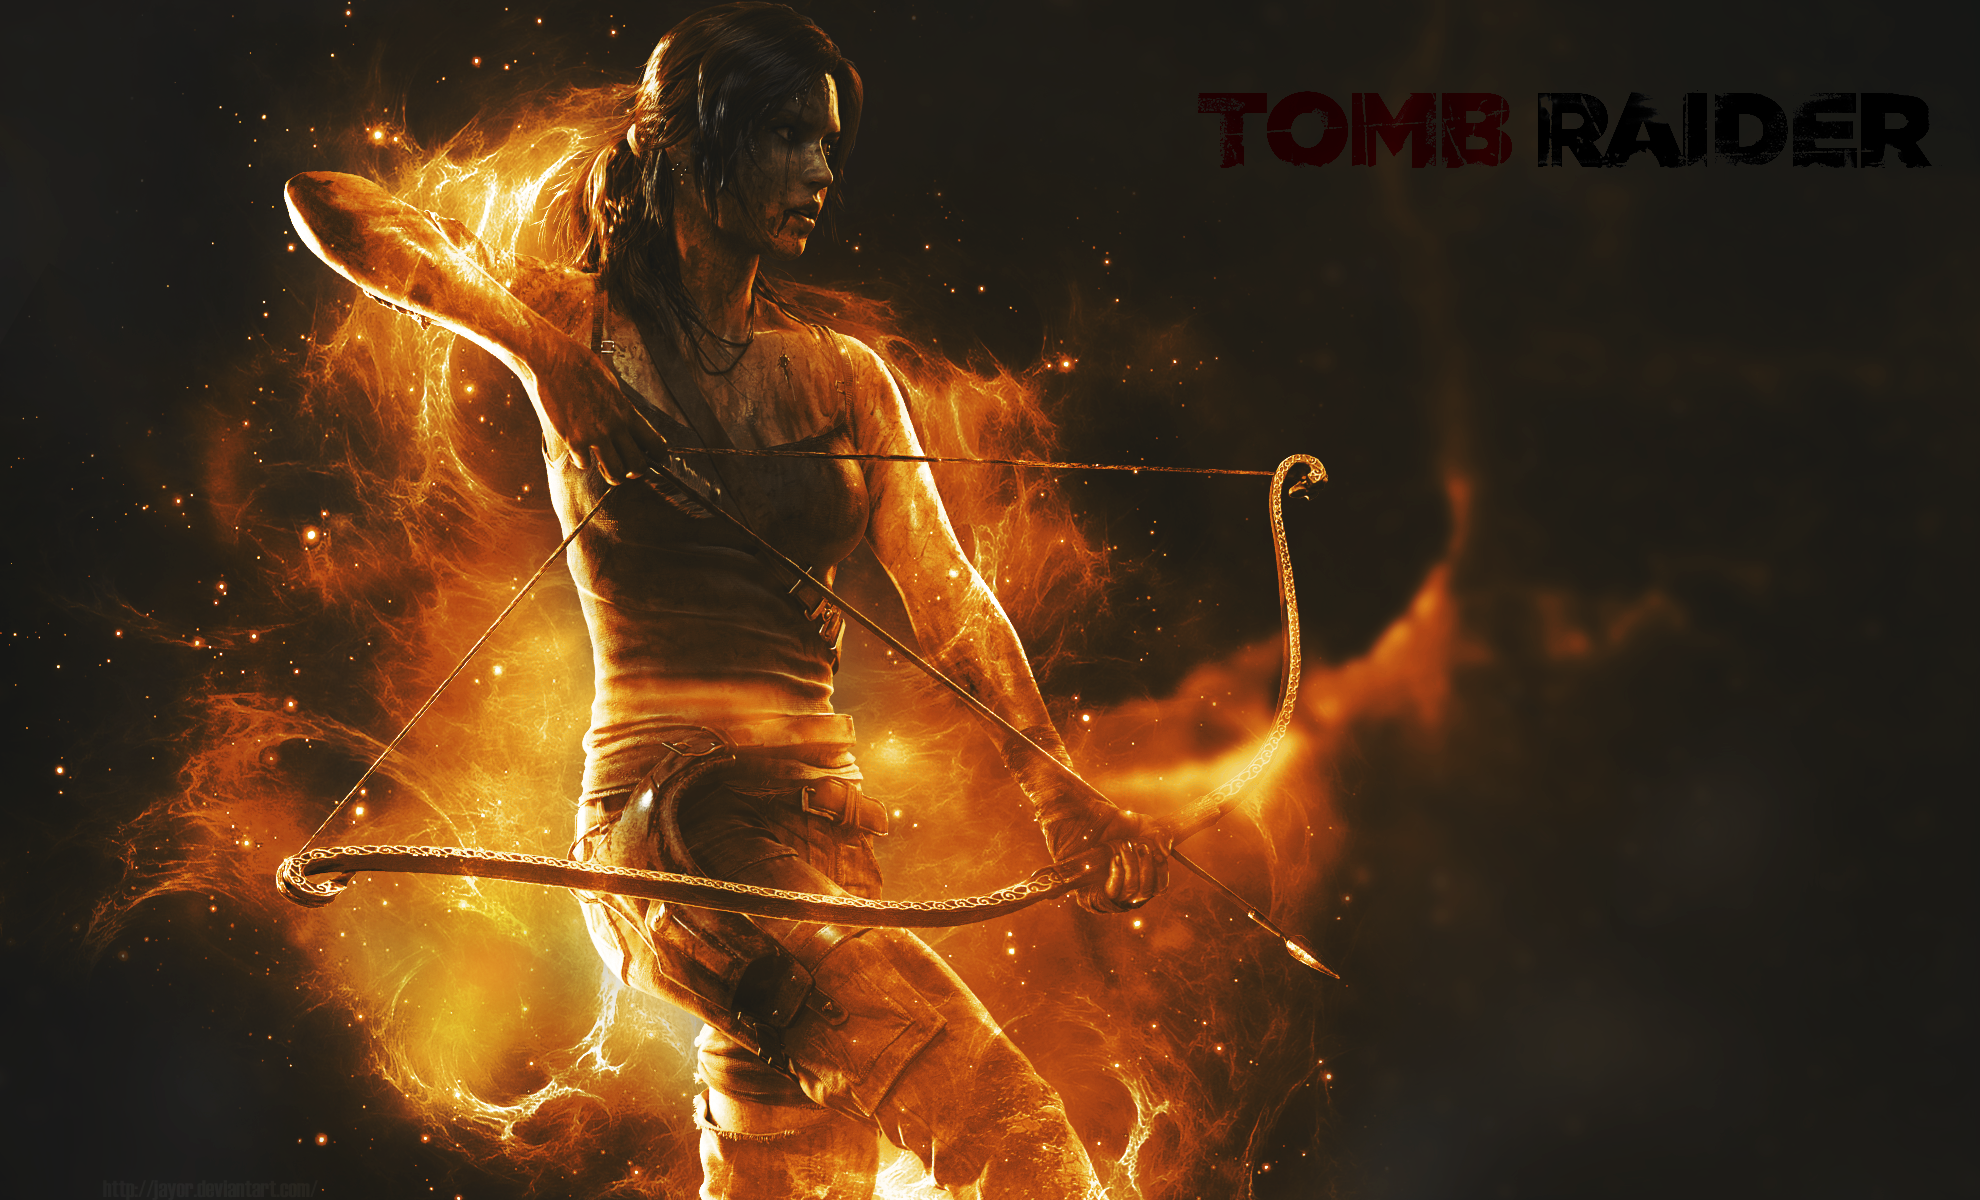 Tomb Raider 2013 Wallpaper: Tomb Raider 2013 Wallpaper By JAYOR On DeviantArt